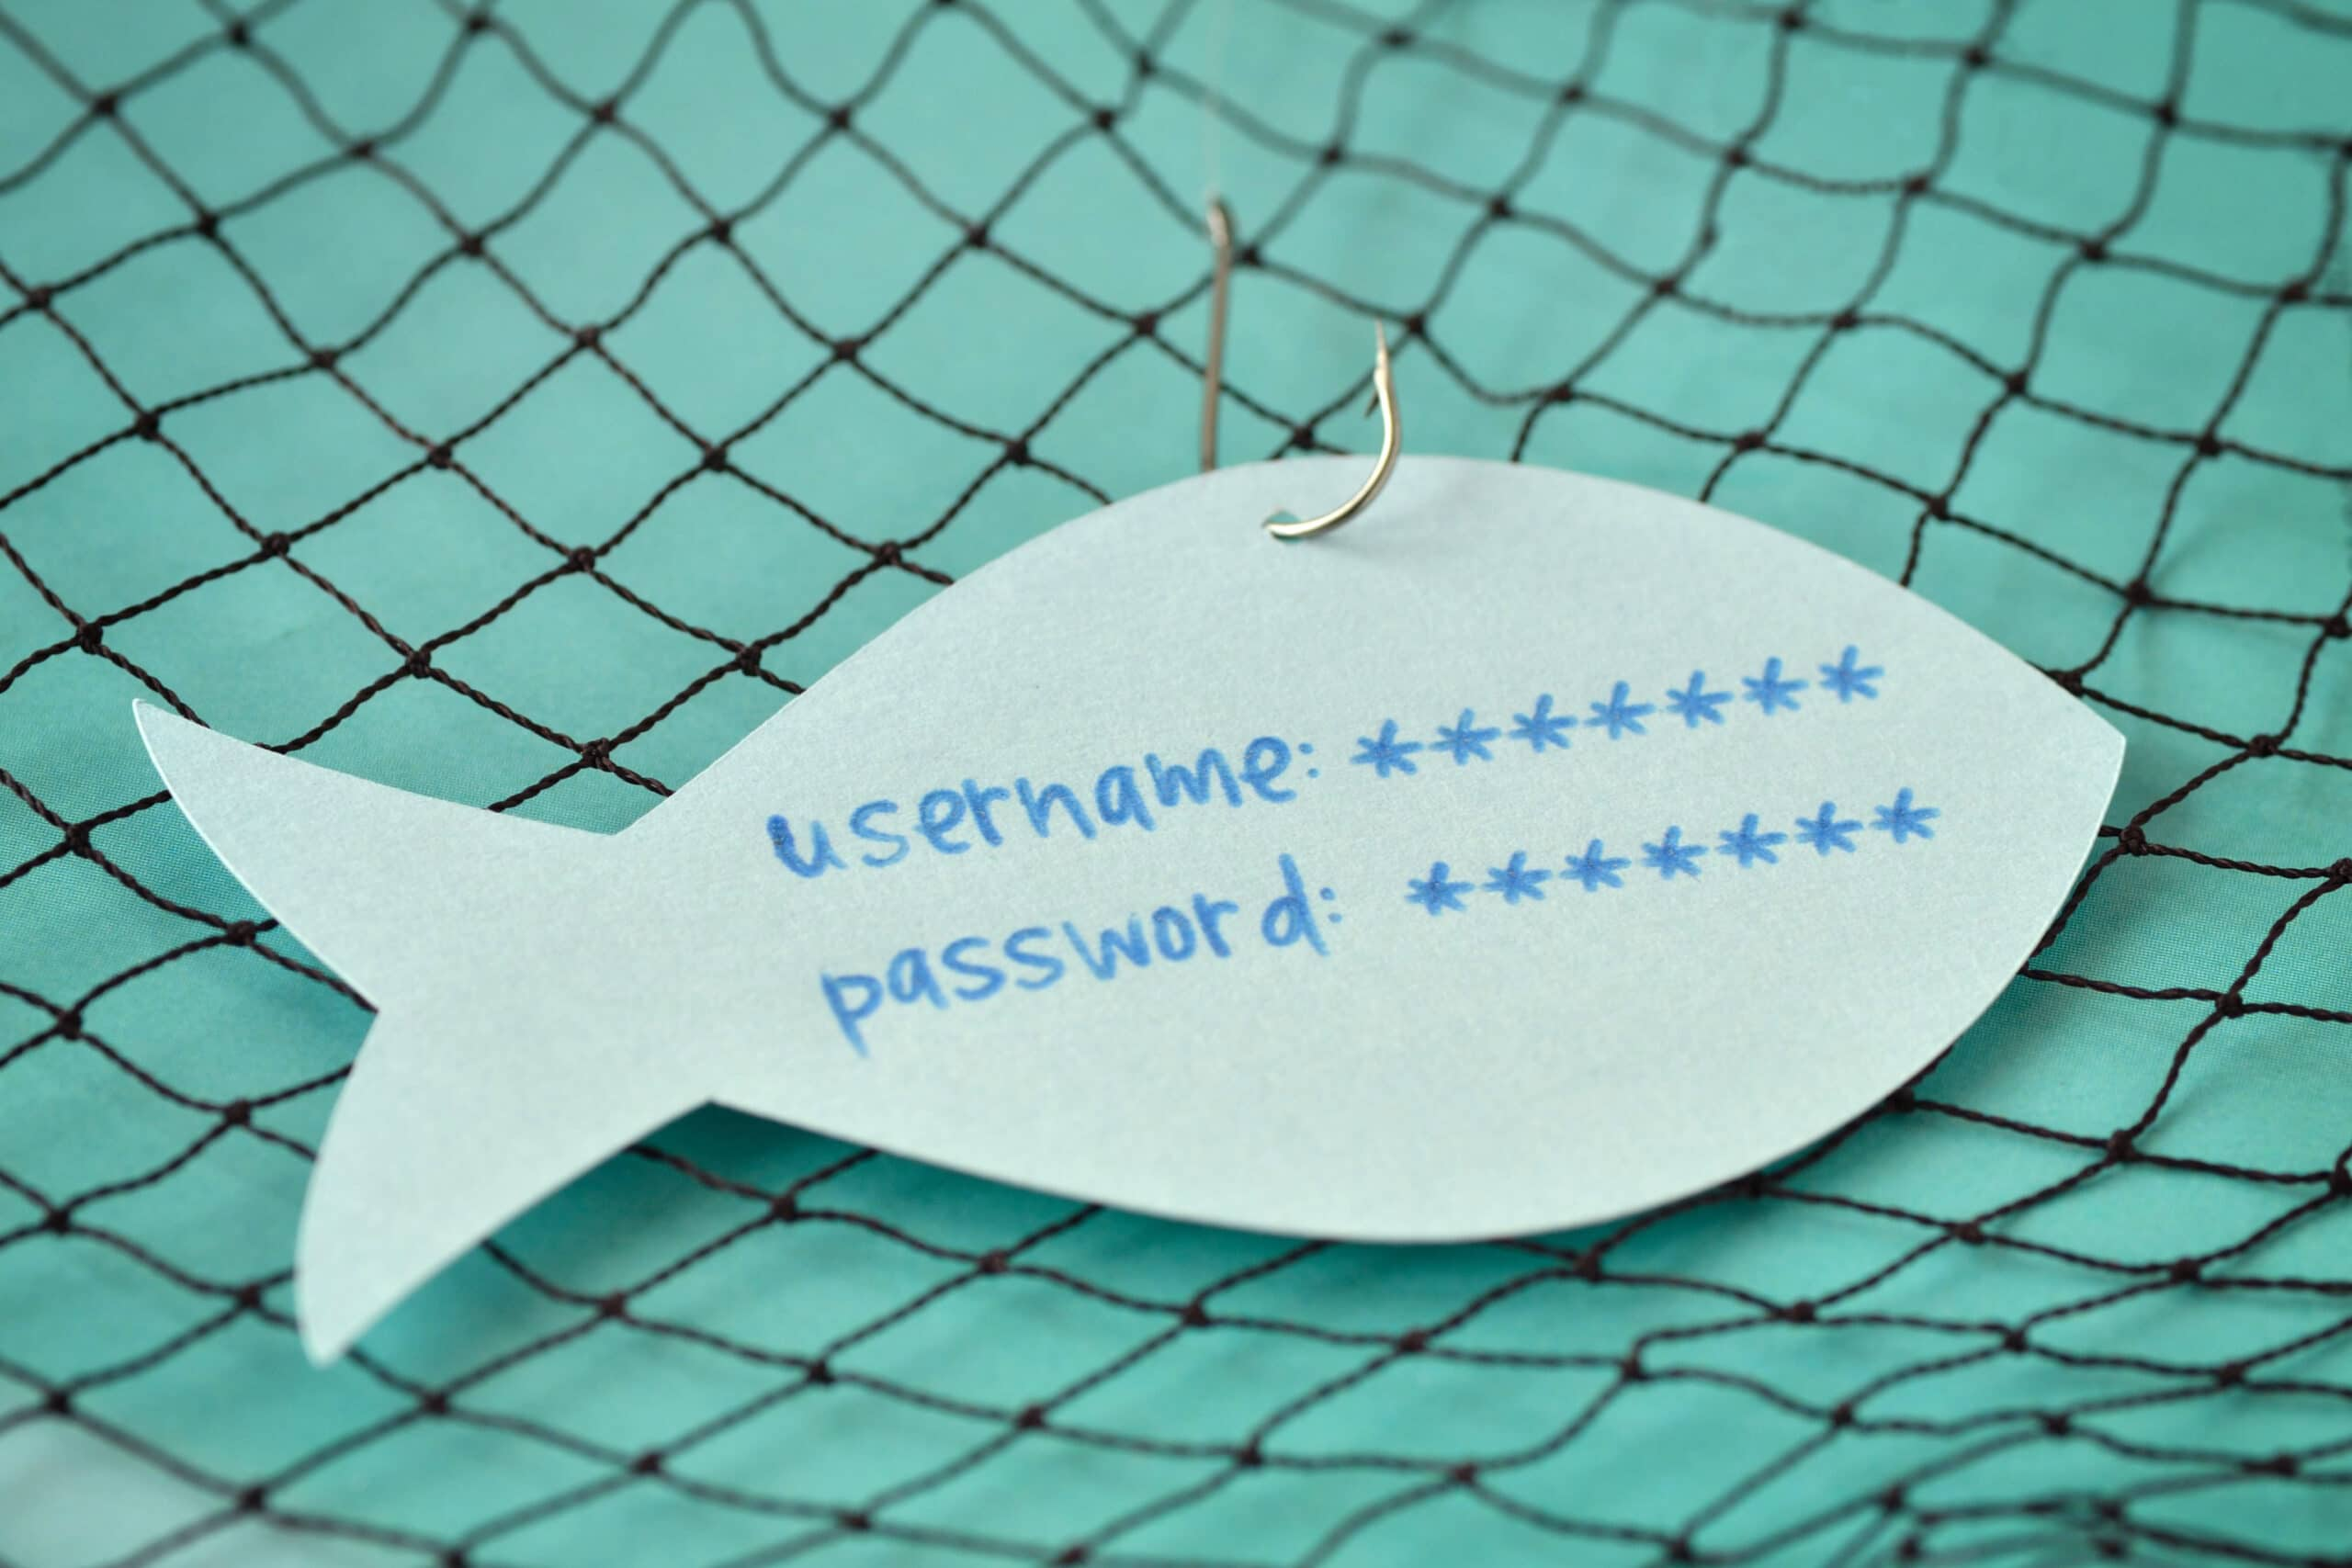 paper cut out of fish with name and password prompts with metal fishing hook through the top against fish net background